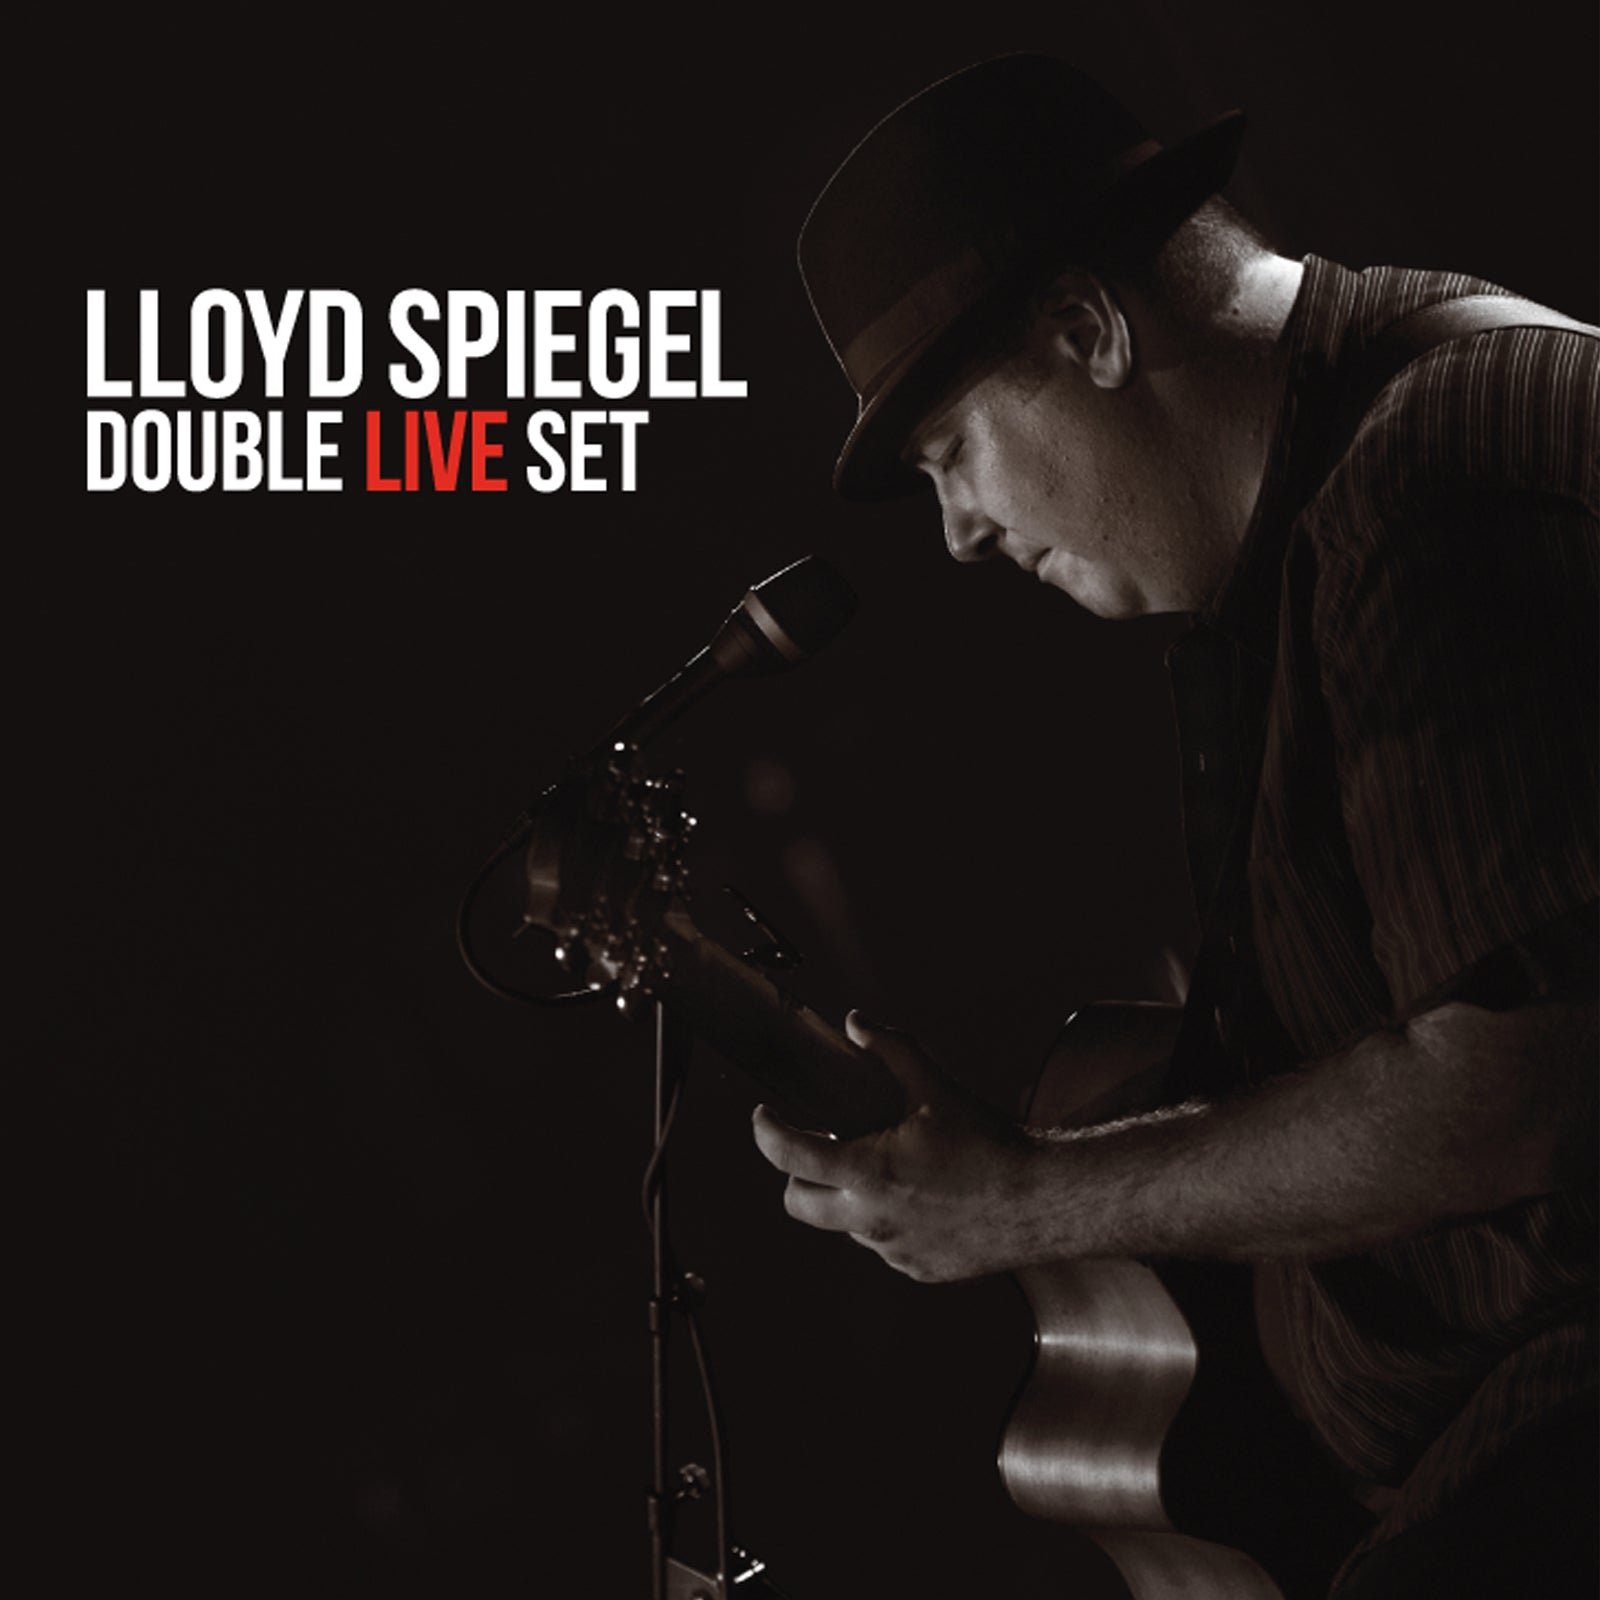 Double Live Set (2015) - Physical CD